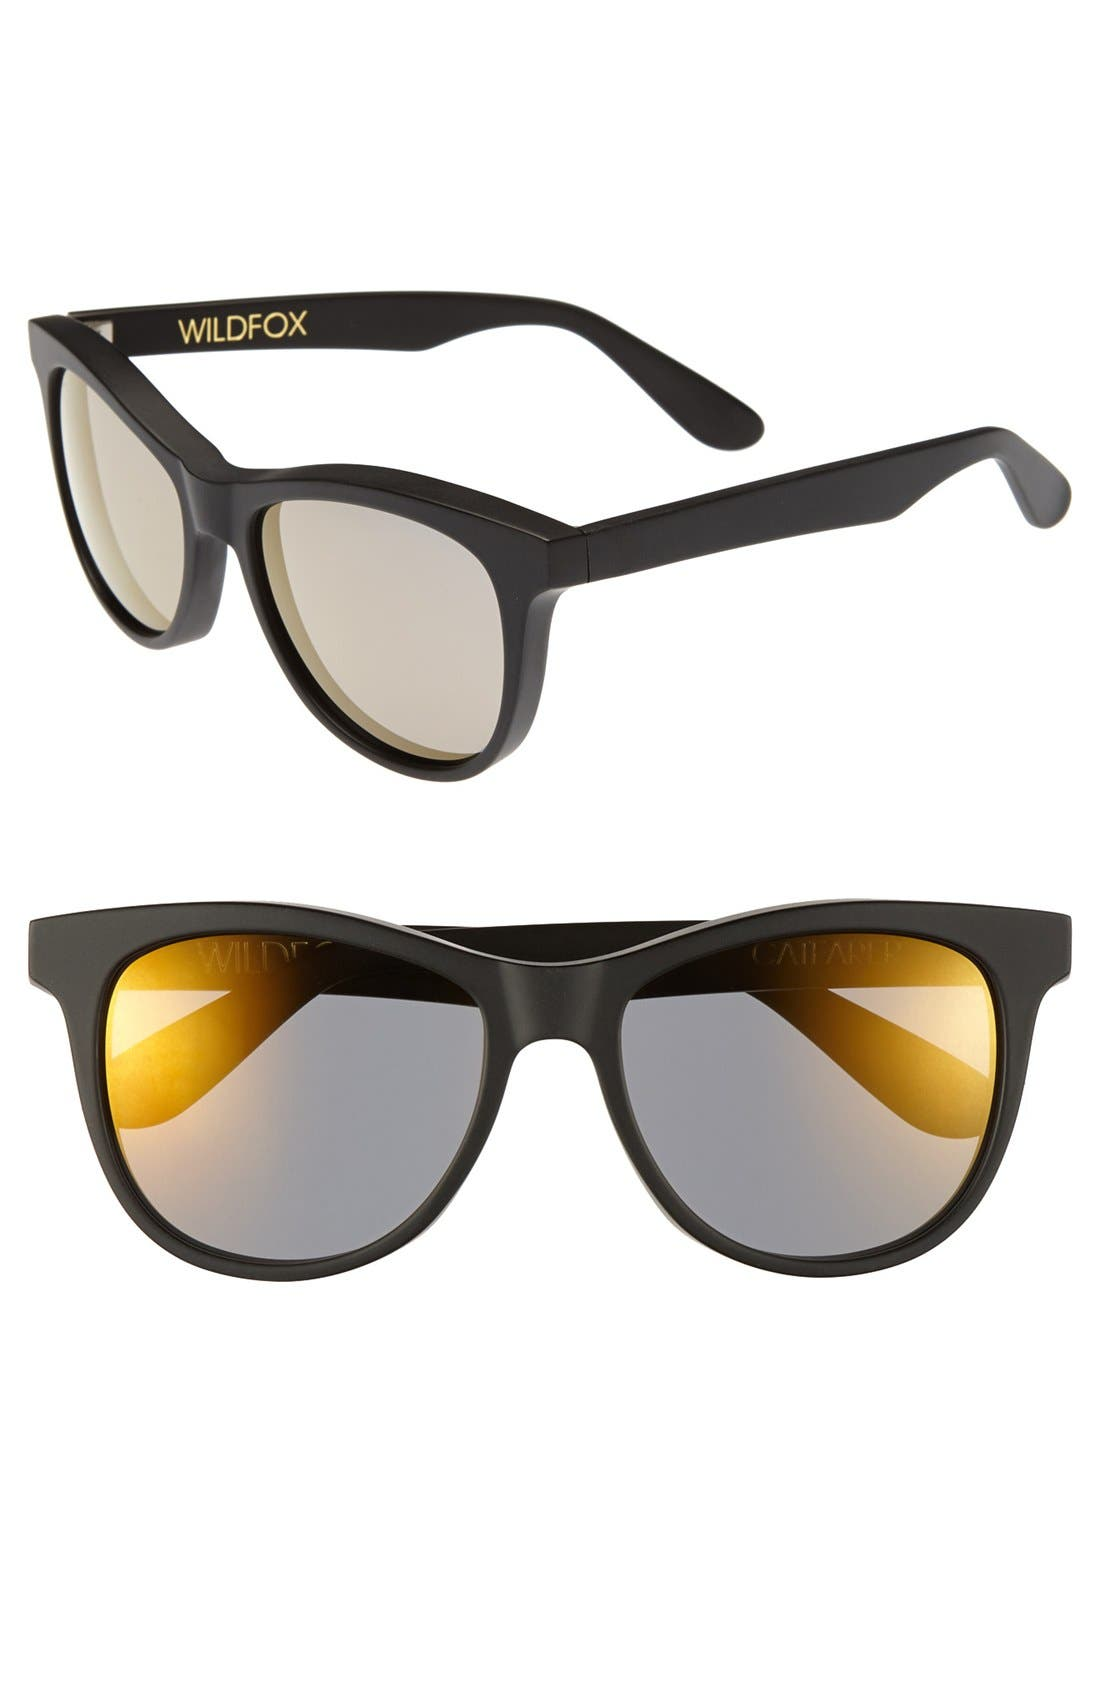 WILDFOX, 'Catfarer Deluxe' 53mm Sunglasses, Main thumbnail 1, color, 001